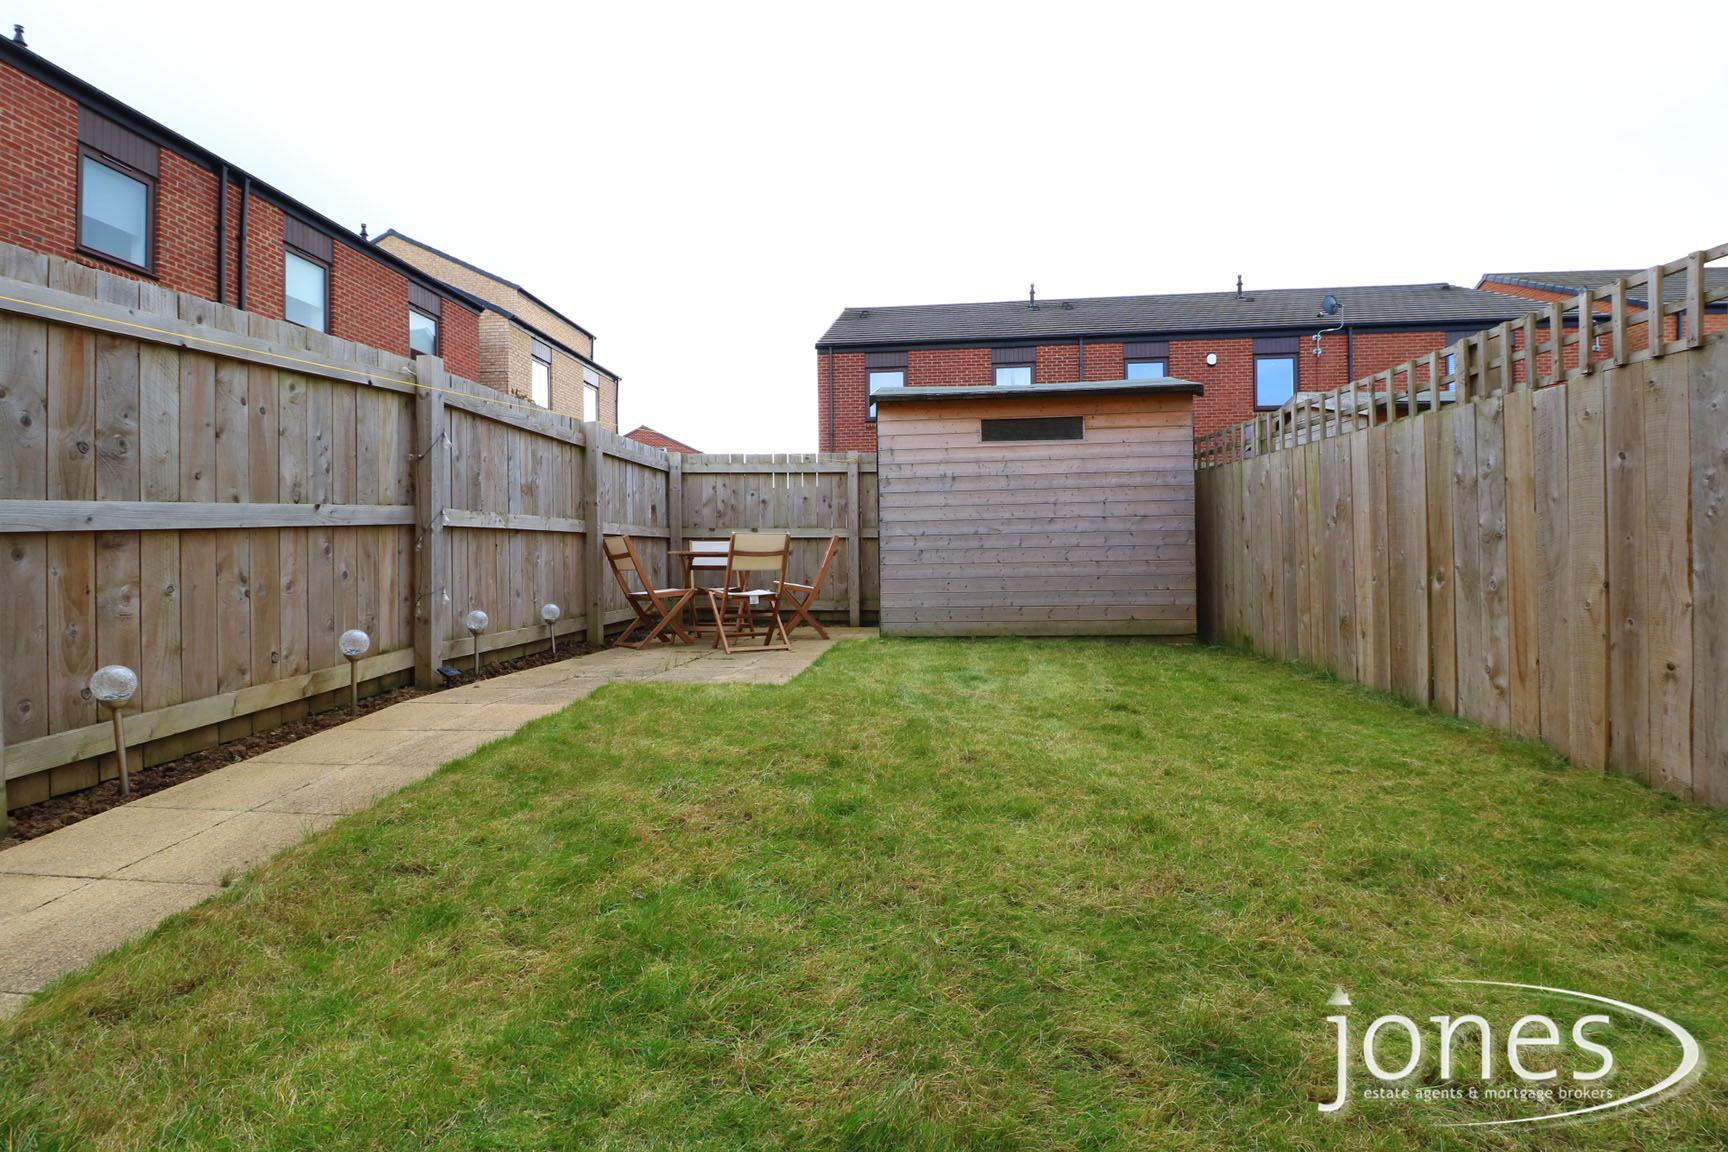 Home for Sale Let - Photo 17 Brookby Court, ,Stockton on Tees,TS18 2SX